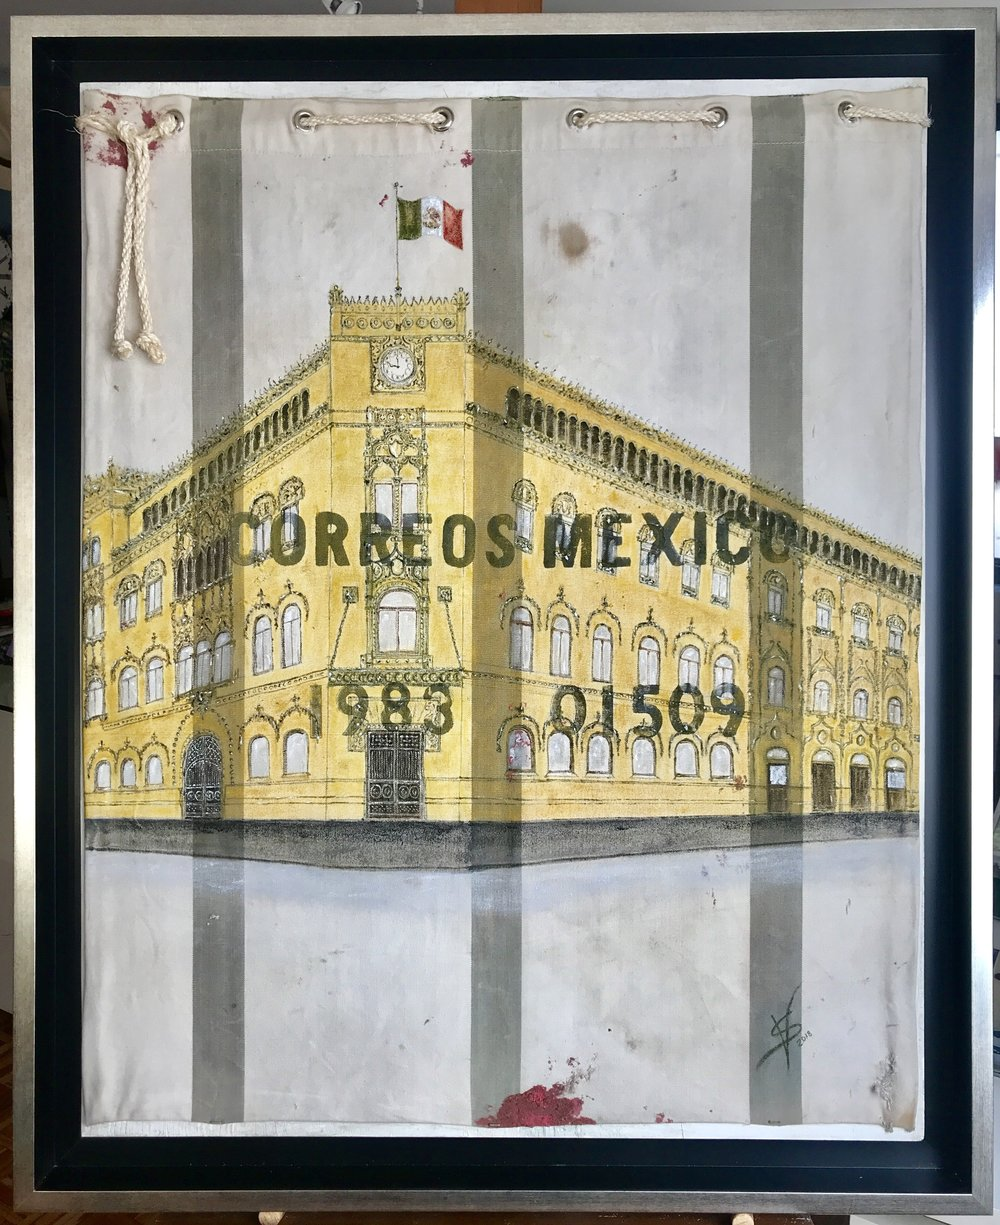 Postal Palace, 2018  Mixed Technique: oil on cotton sack with usage marks by the Mexico post, used as canvas on triply wood.  100 x 80 cm